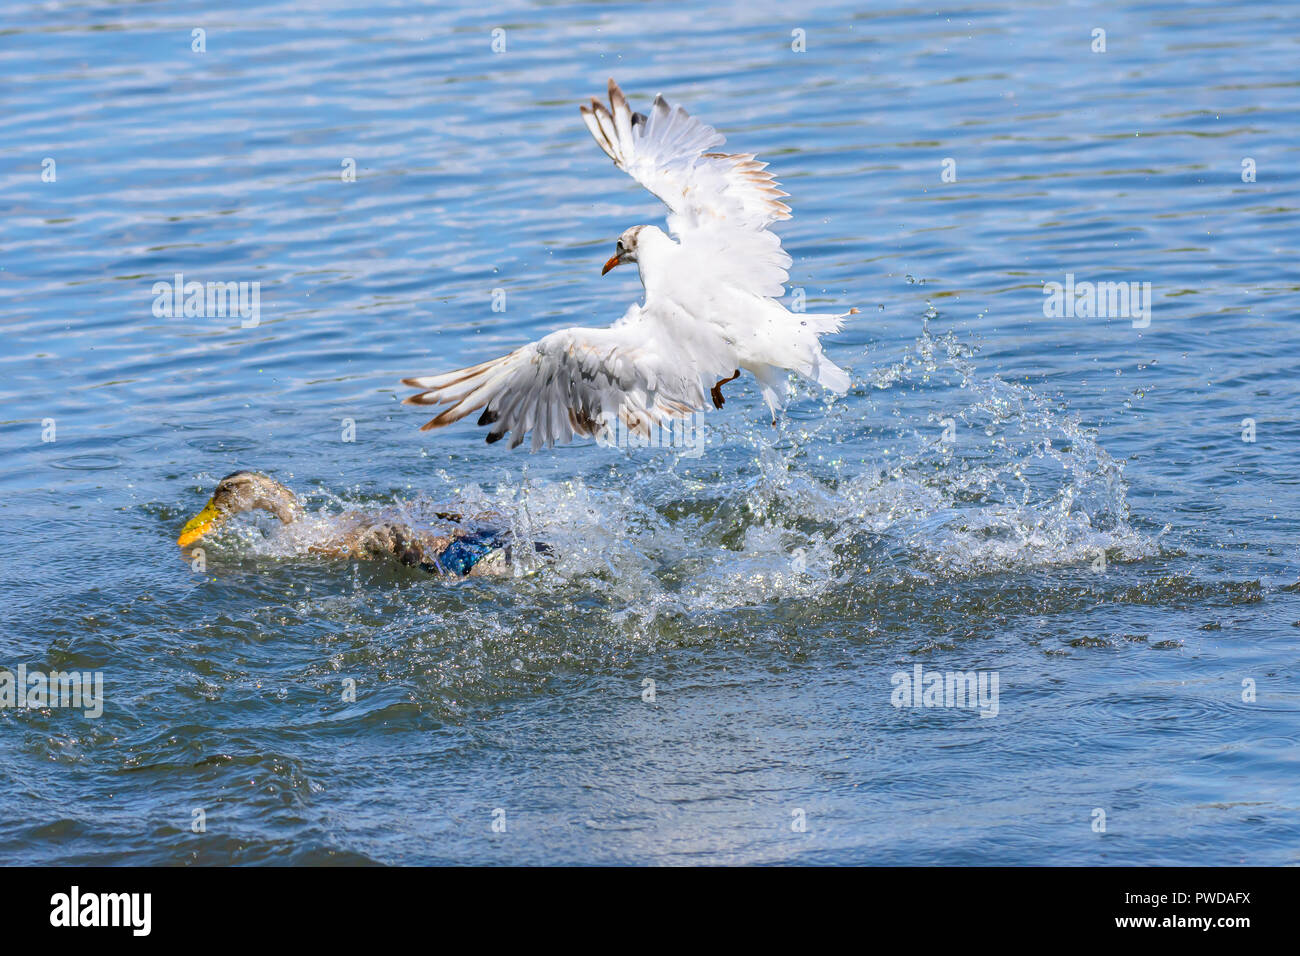 Wildlife photography Uk.Seagull chasing the duck trying to get away with piece of bread in beak thrown by people feeding birds.Waterbirds in action. - Stock Image